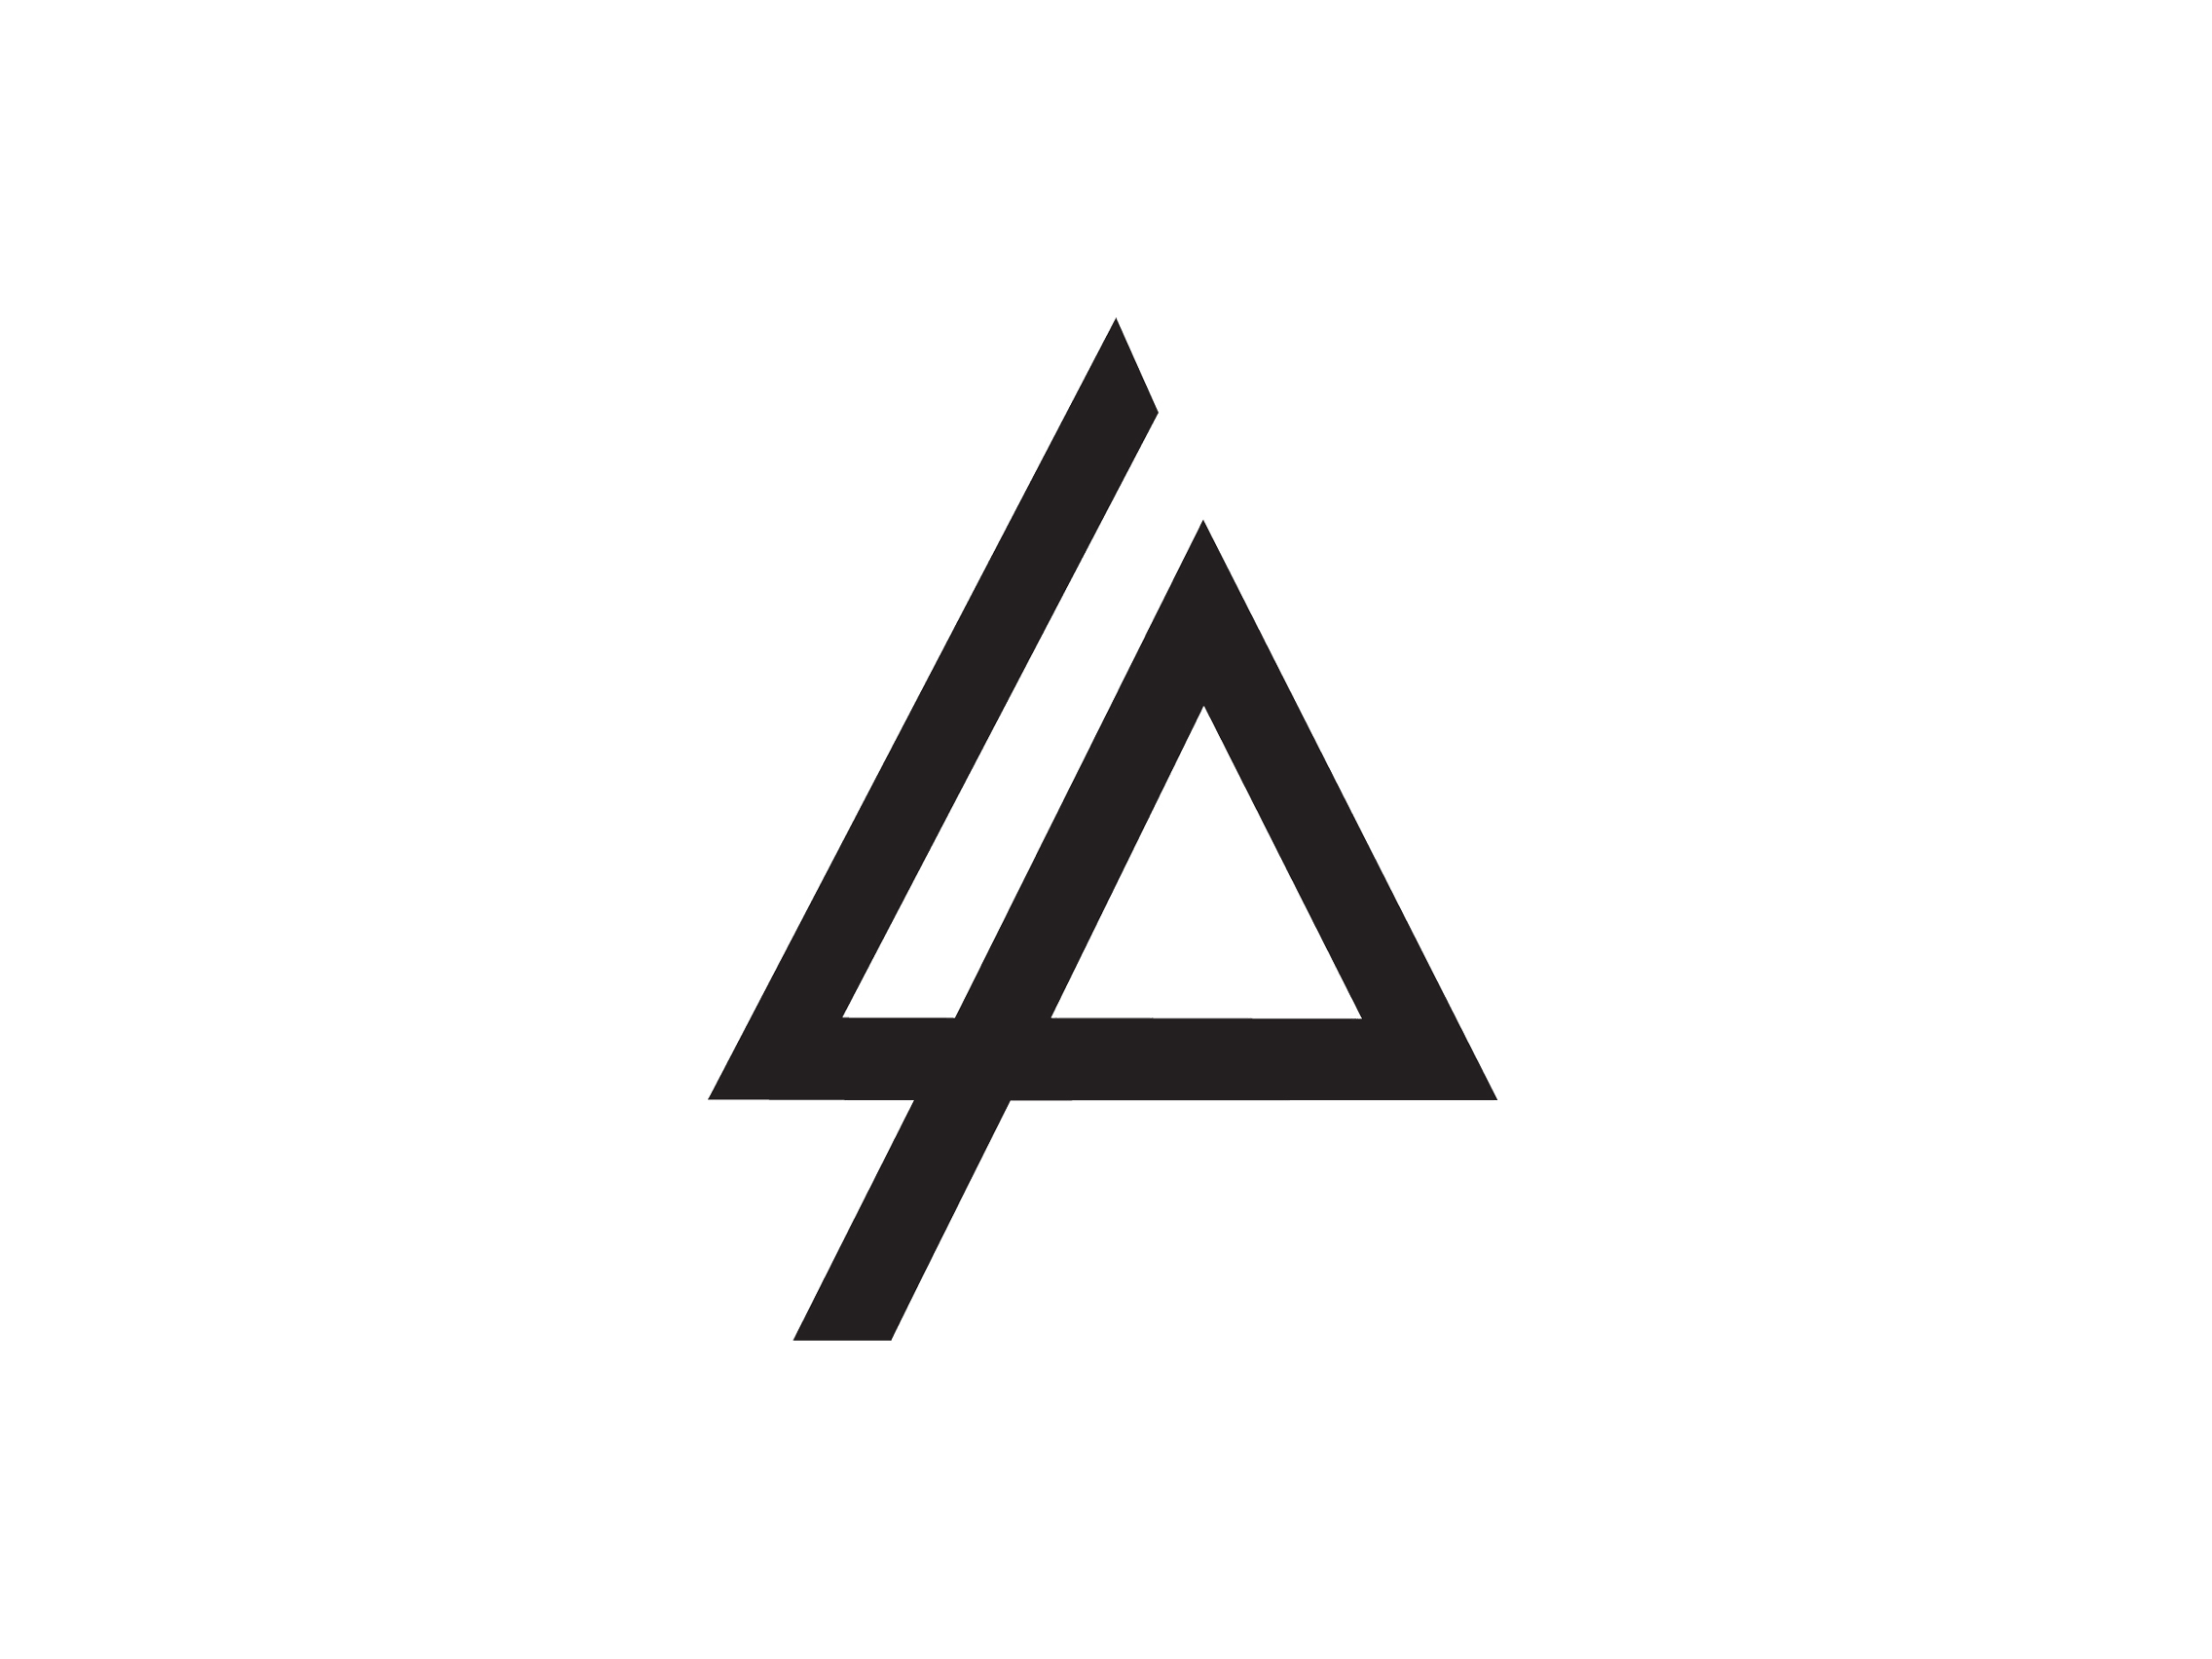 Geometric logo png. Triangle google other di